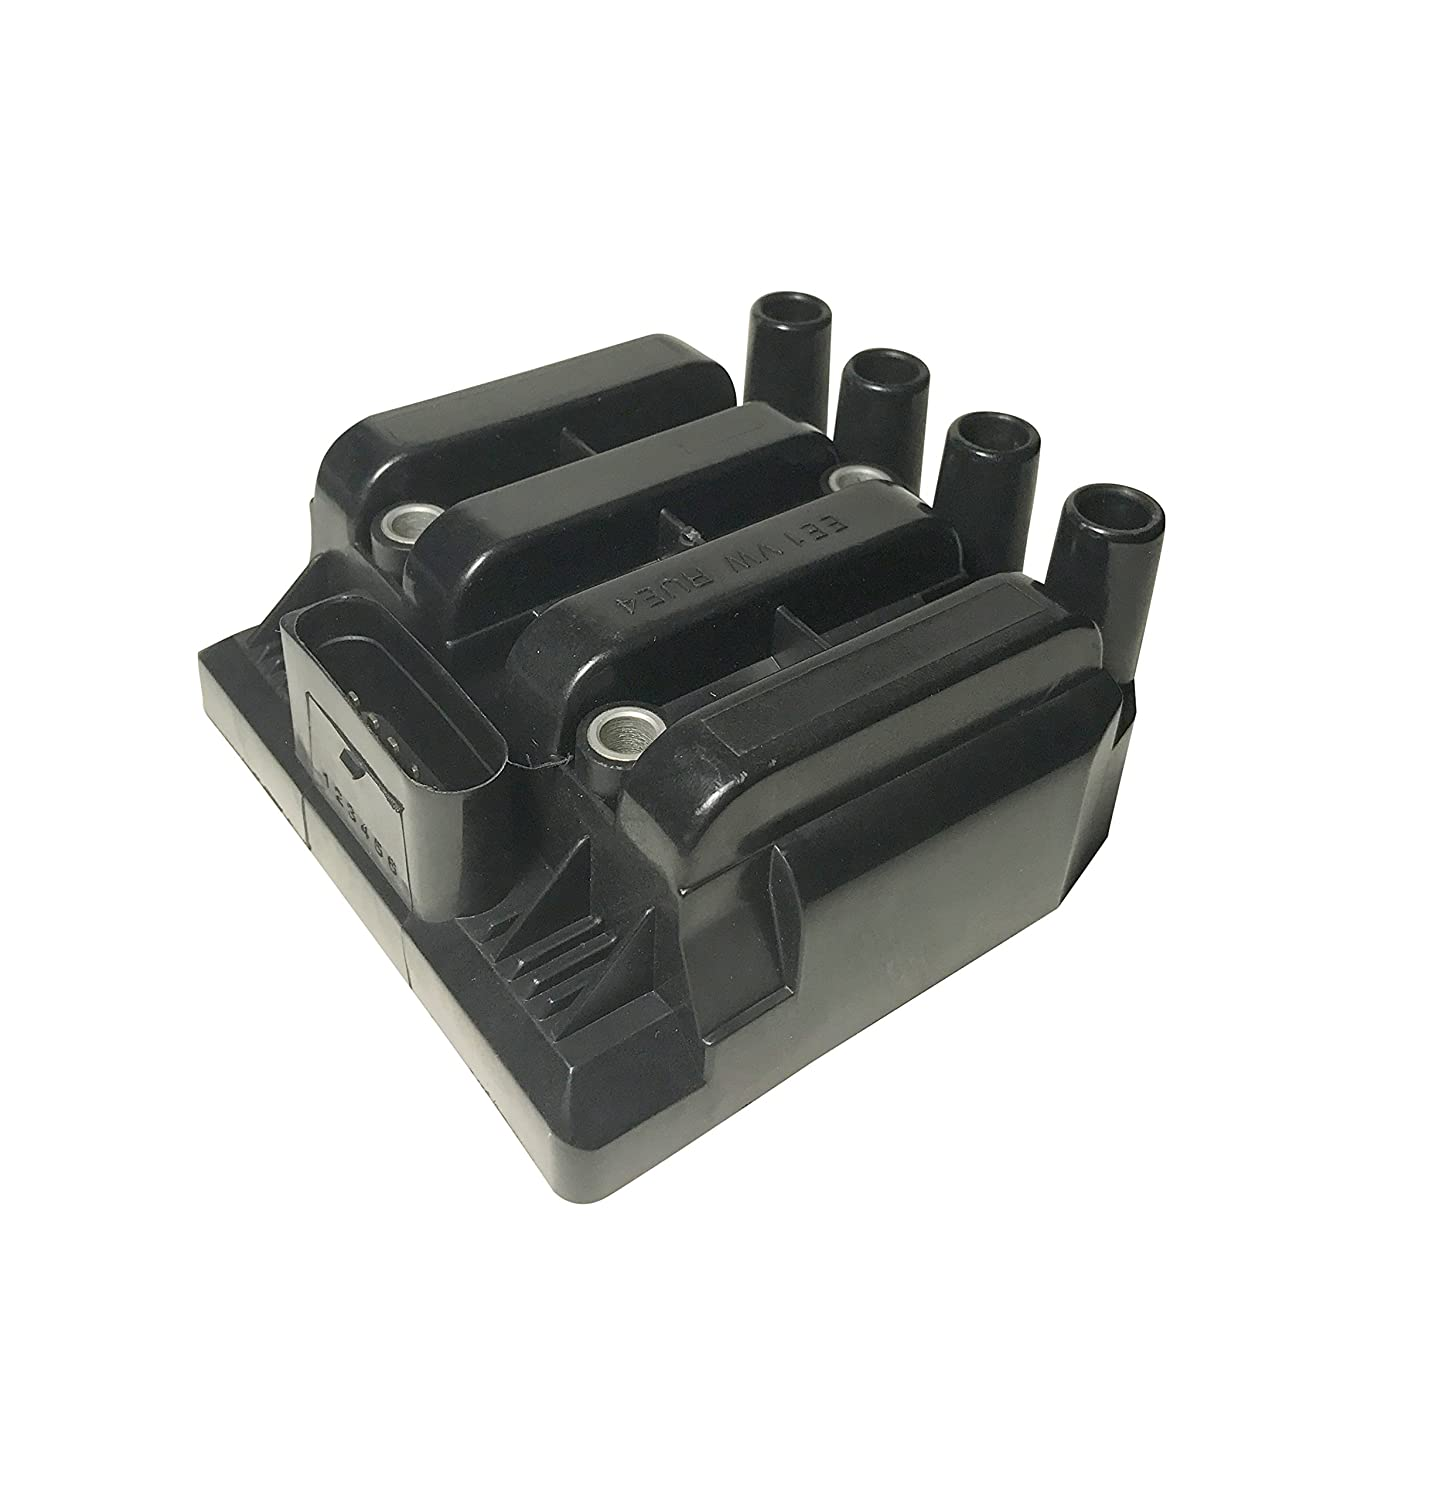 Ignition Coil Pack - Volkswagen Golf, Jetta, Beetle 2.0L Vehicles - Replaces Part# 06A905097A - 2001, 2002, 2003, 2004, 2005 Models - 2001 Volkswagen Jetta Coil Pack, Golf 2.0 and More Image